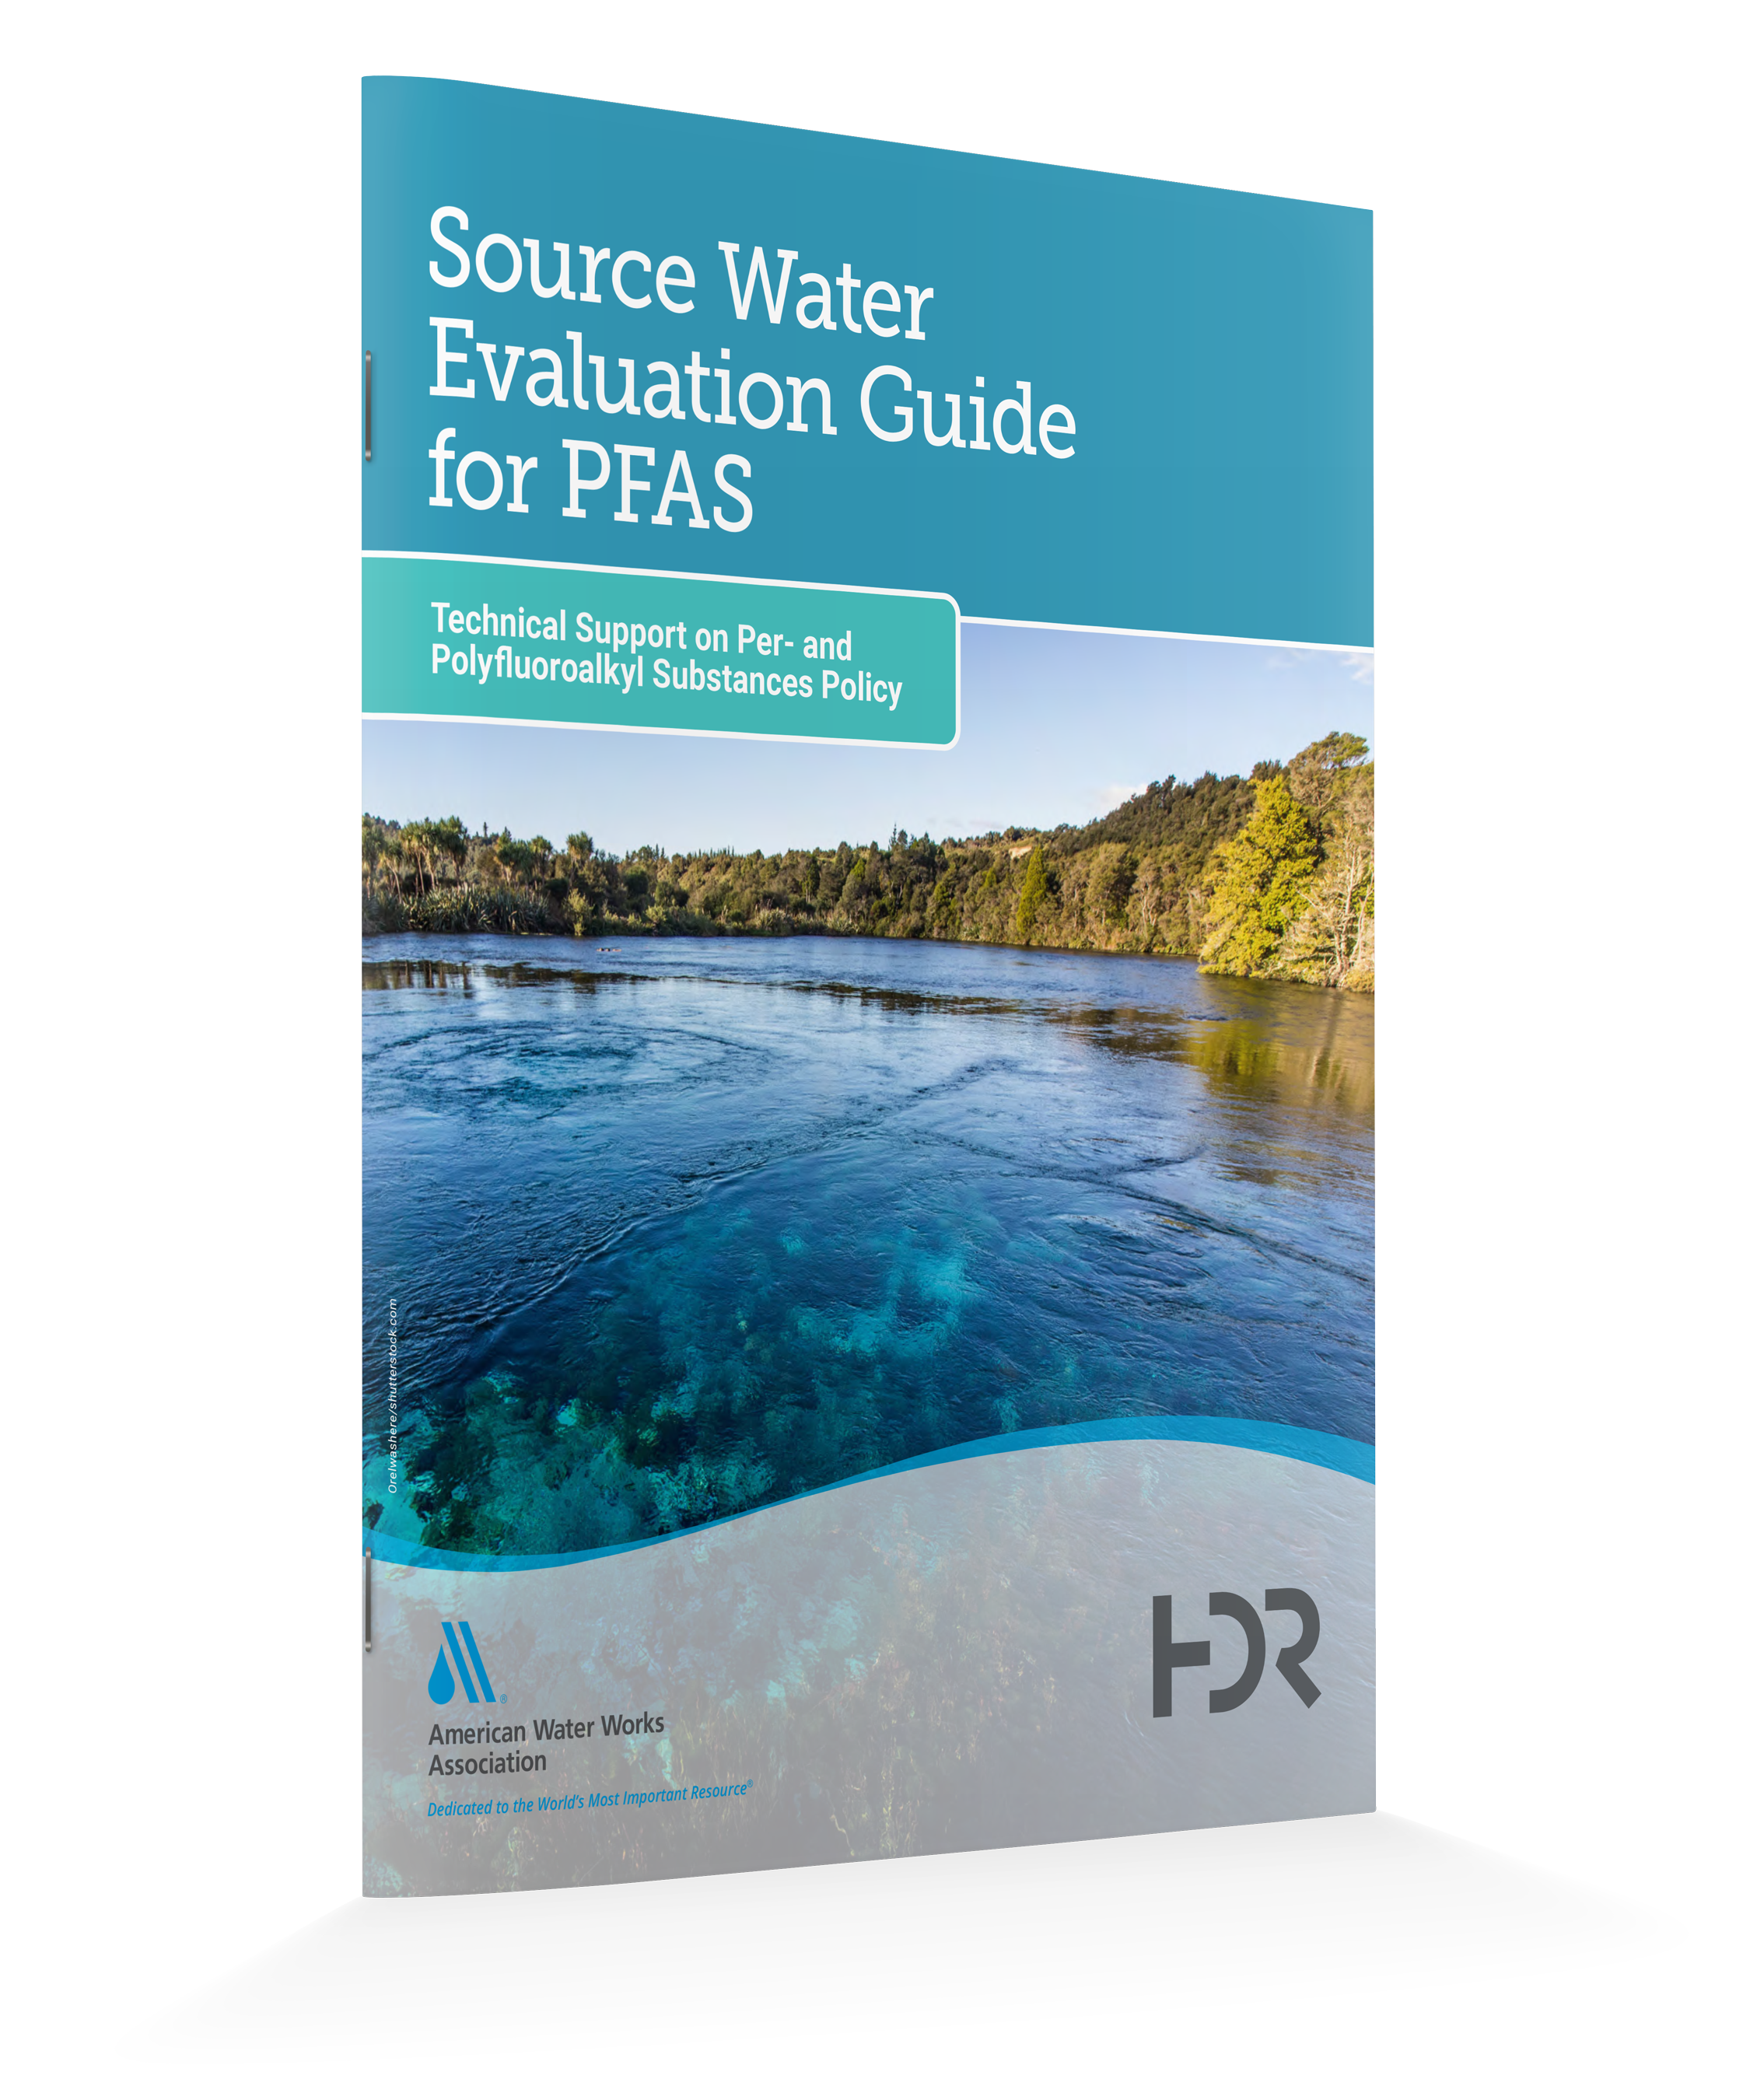 Source-Water-Eval-Guide-for-PFAS2